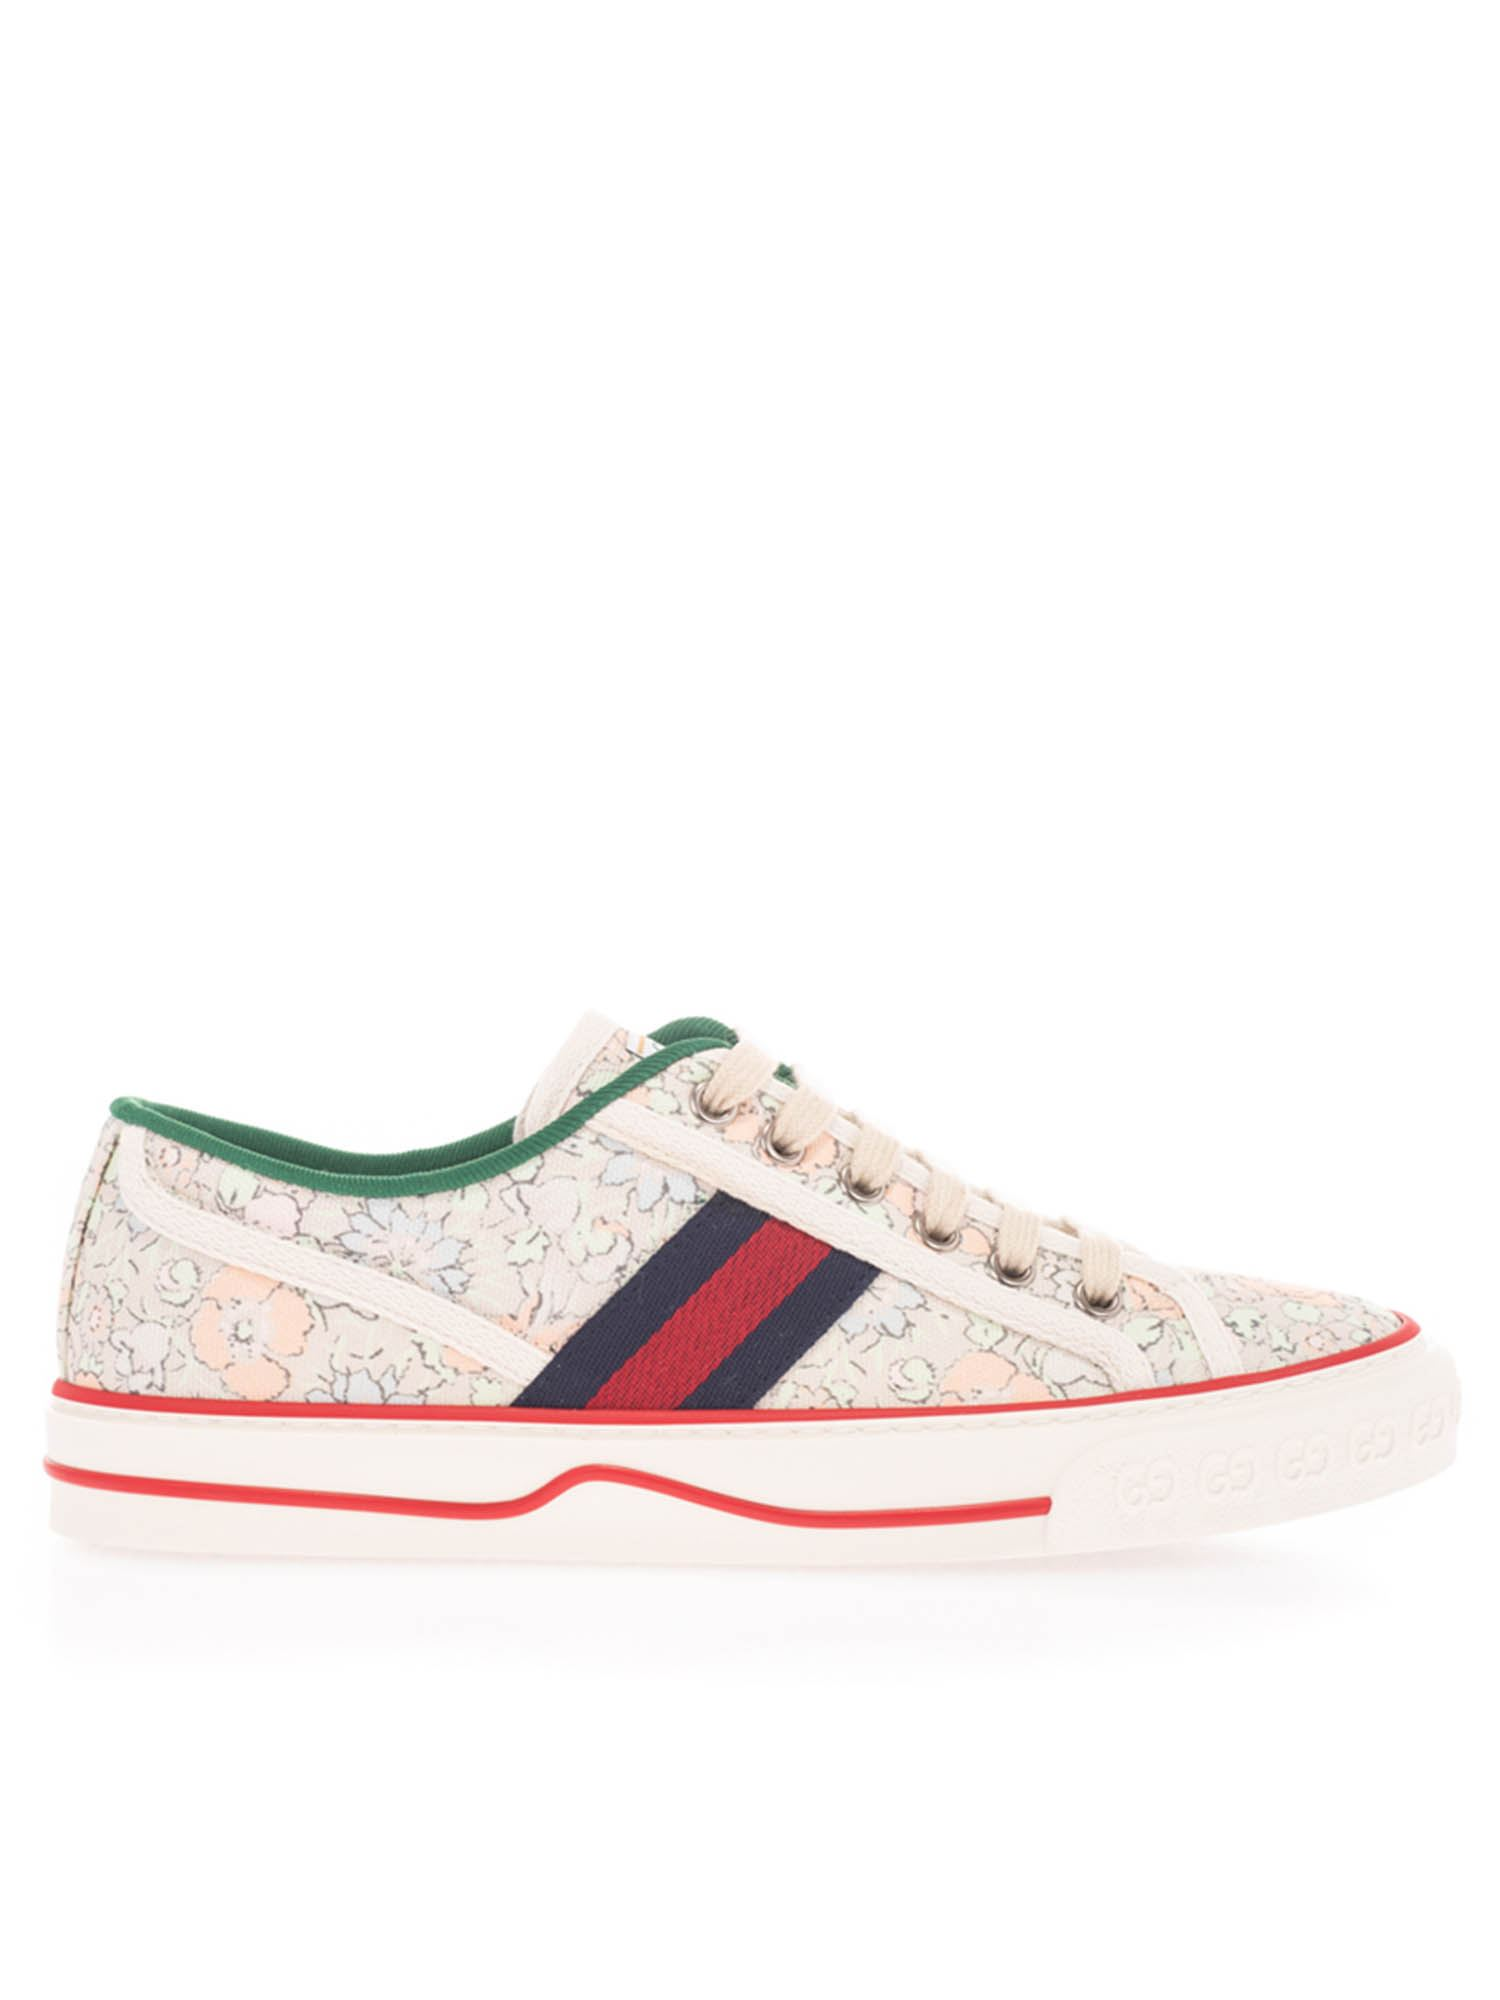 Gucci SNEAKERS IN MULTICOLOR